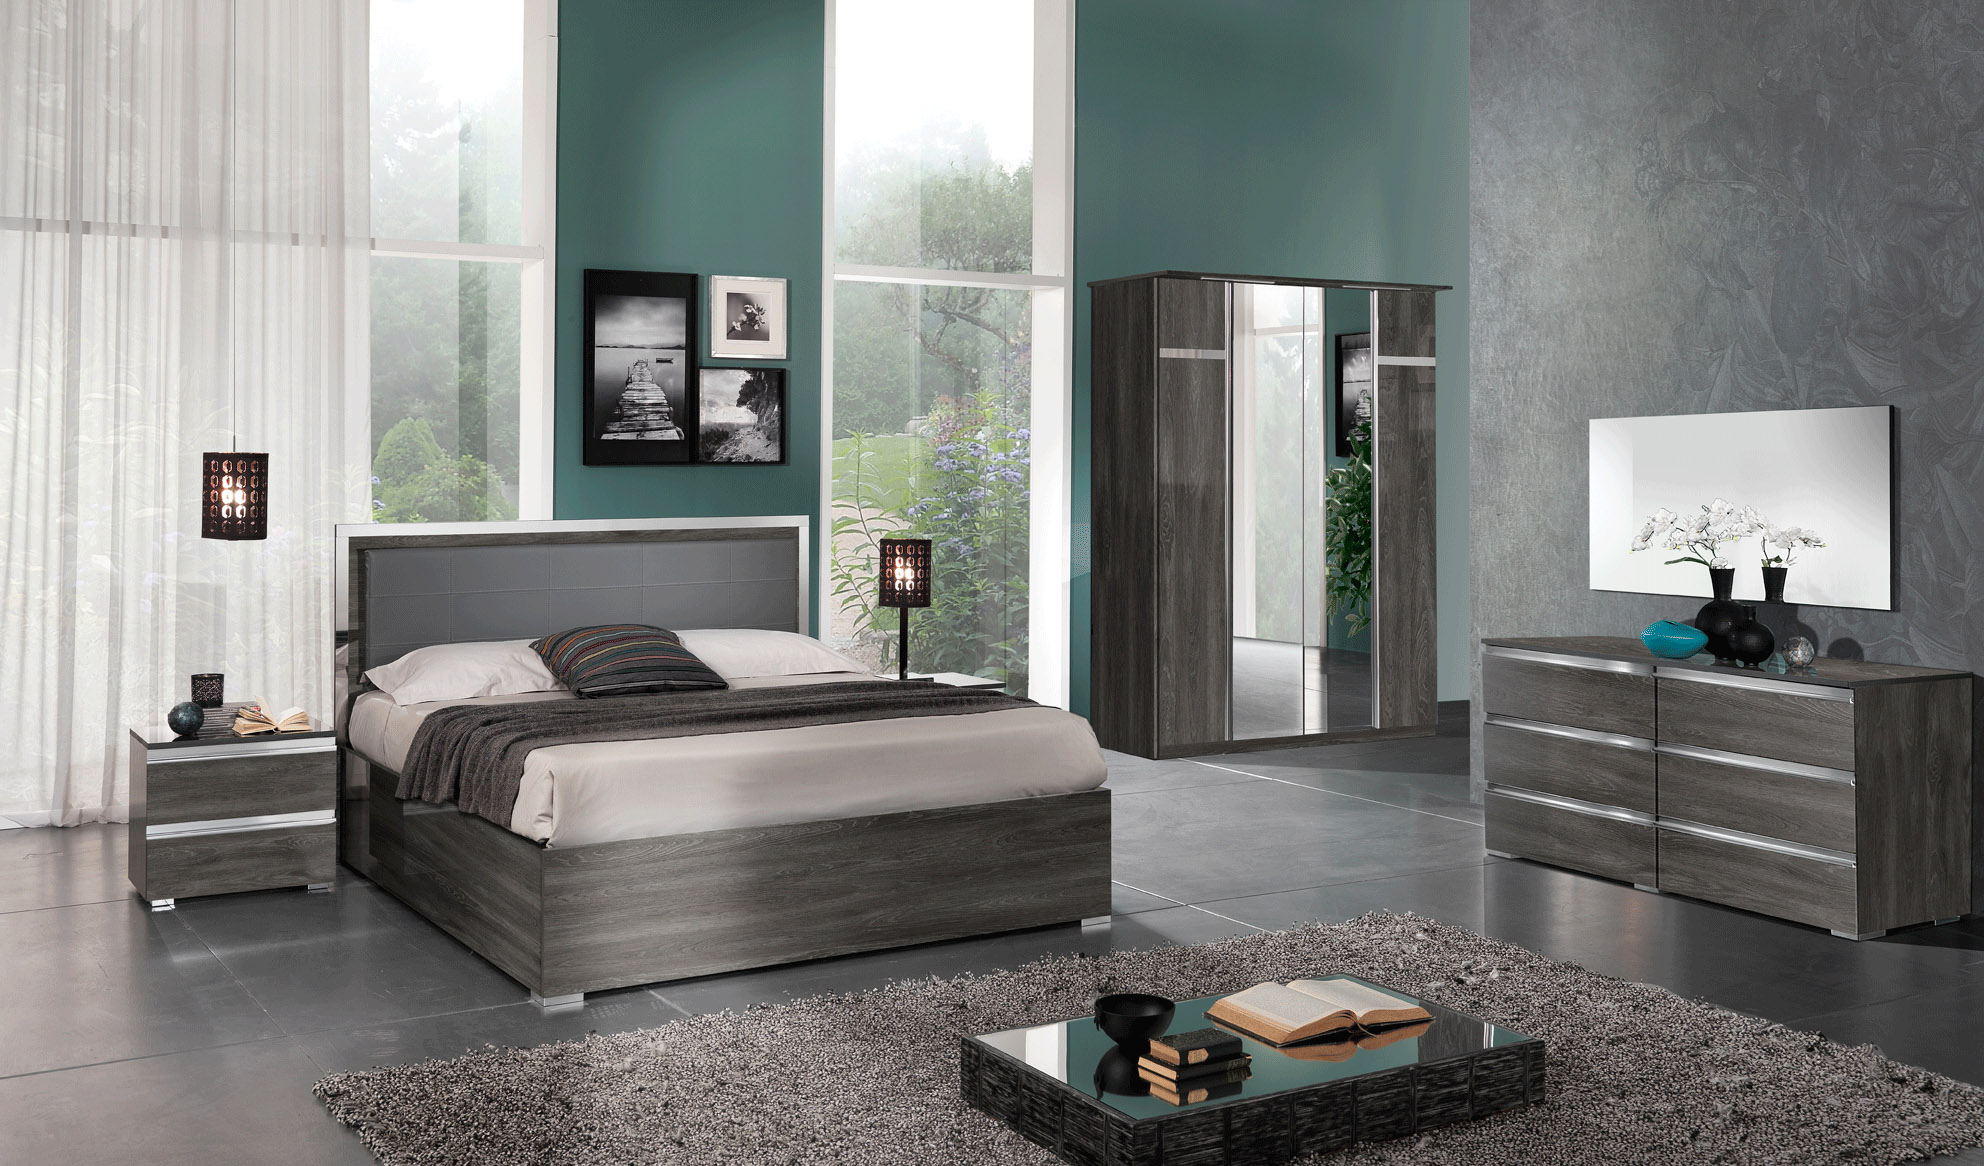 made in italy leather contemporary platform bedroom sets 16395 | italian bed furnishing grey master bedroom suite dreser oxford